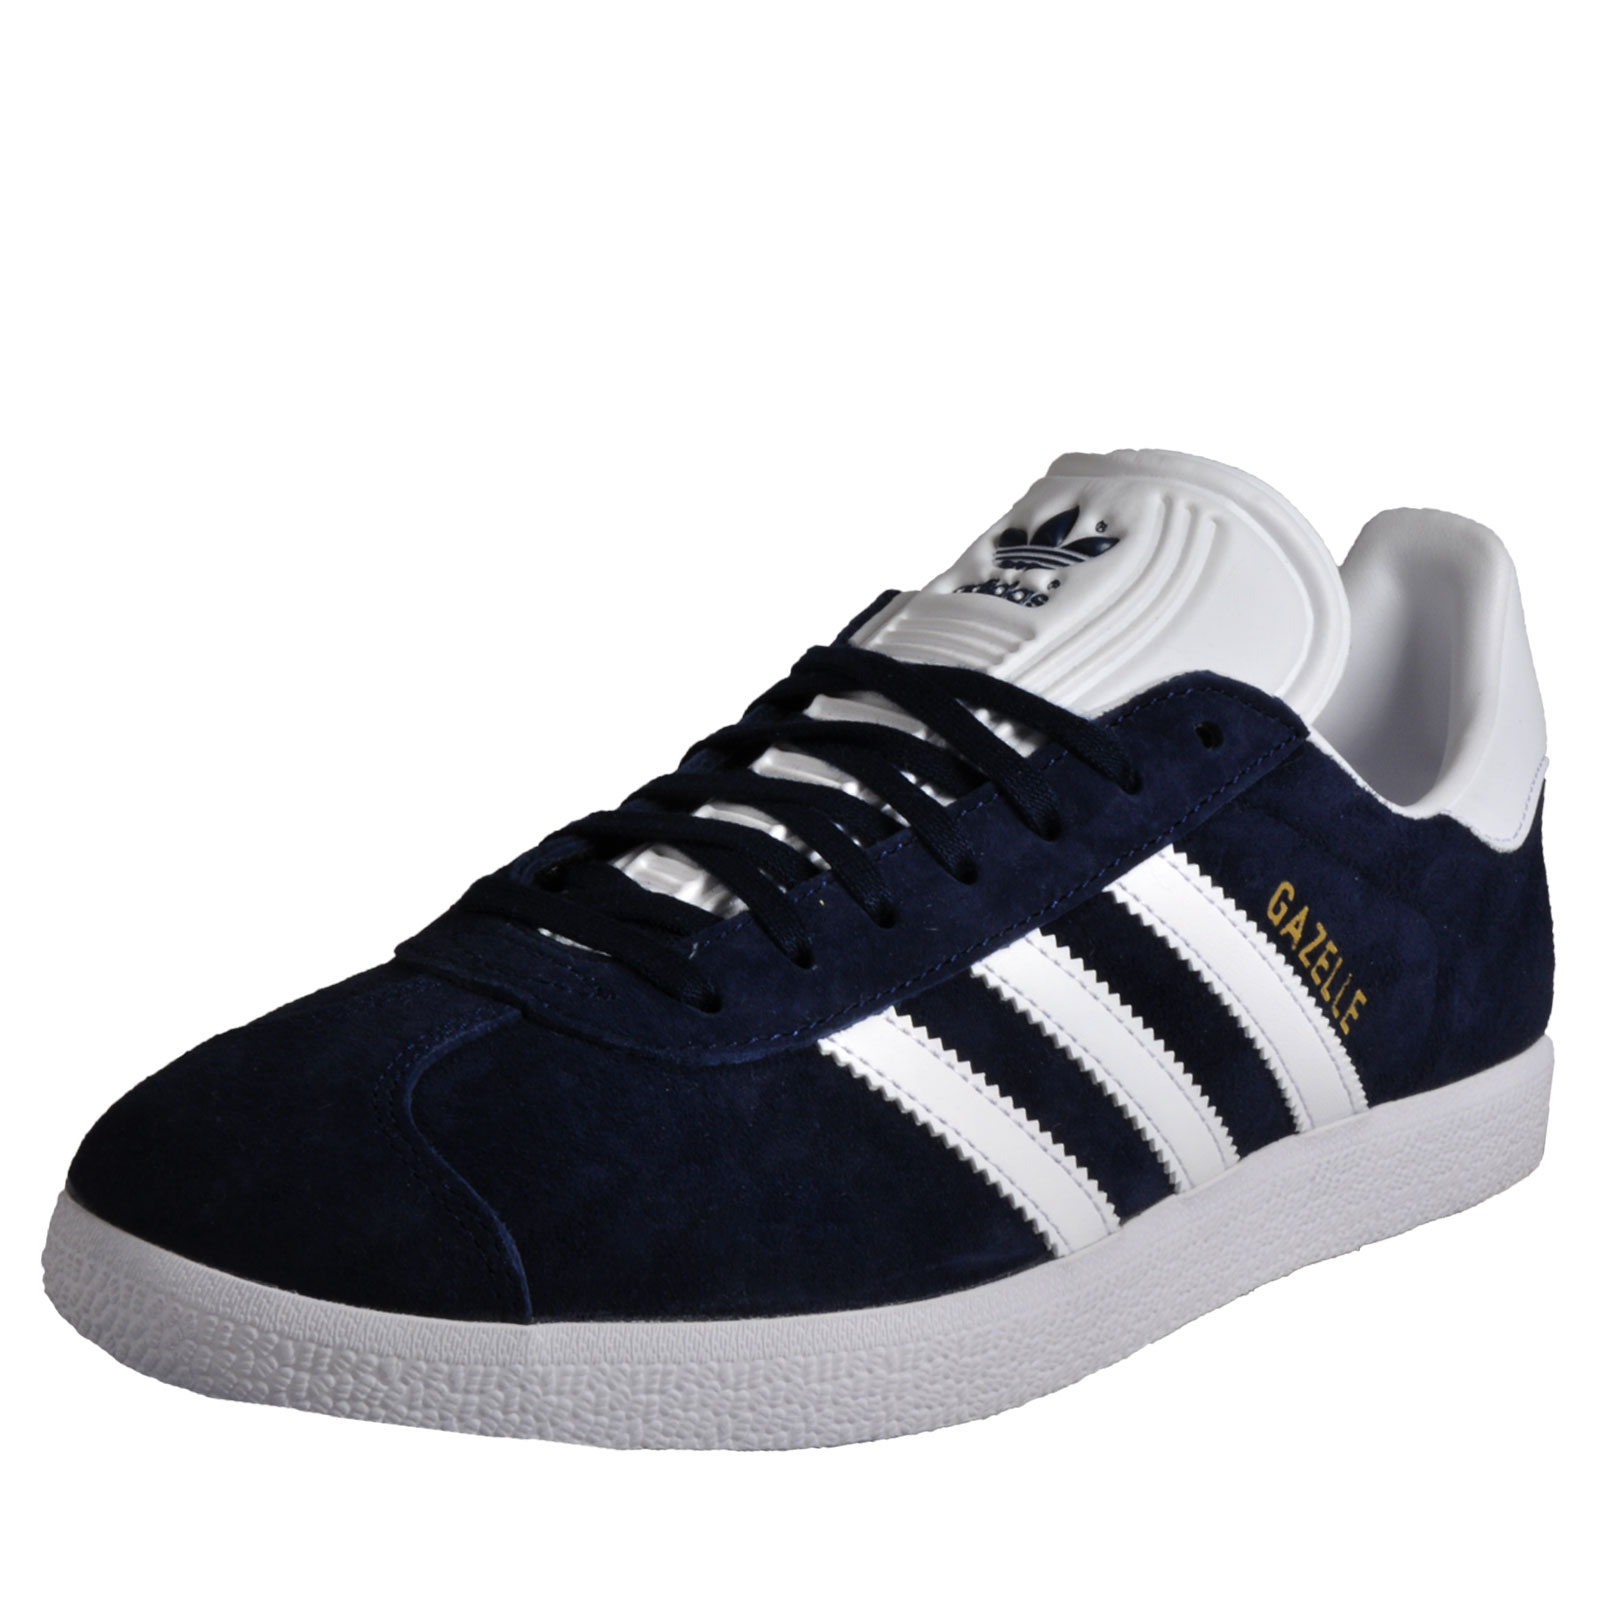 cc61e6f904011d Details about Adidas Originals Gazelle Men s Classic Casual Retro Vintage  Trainers Navy